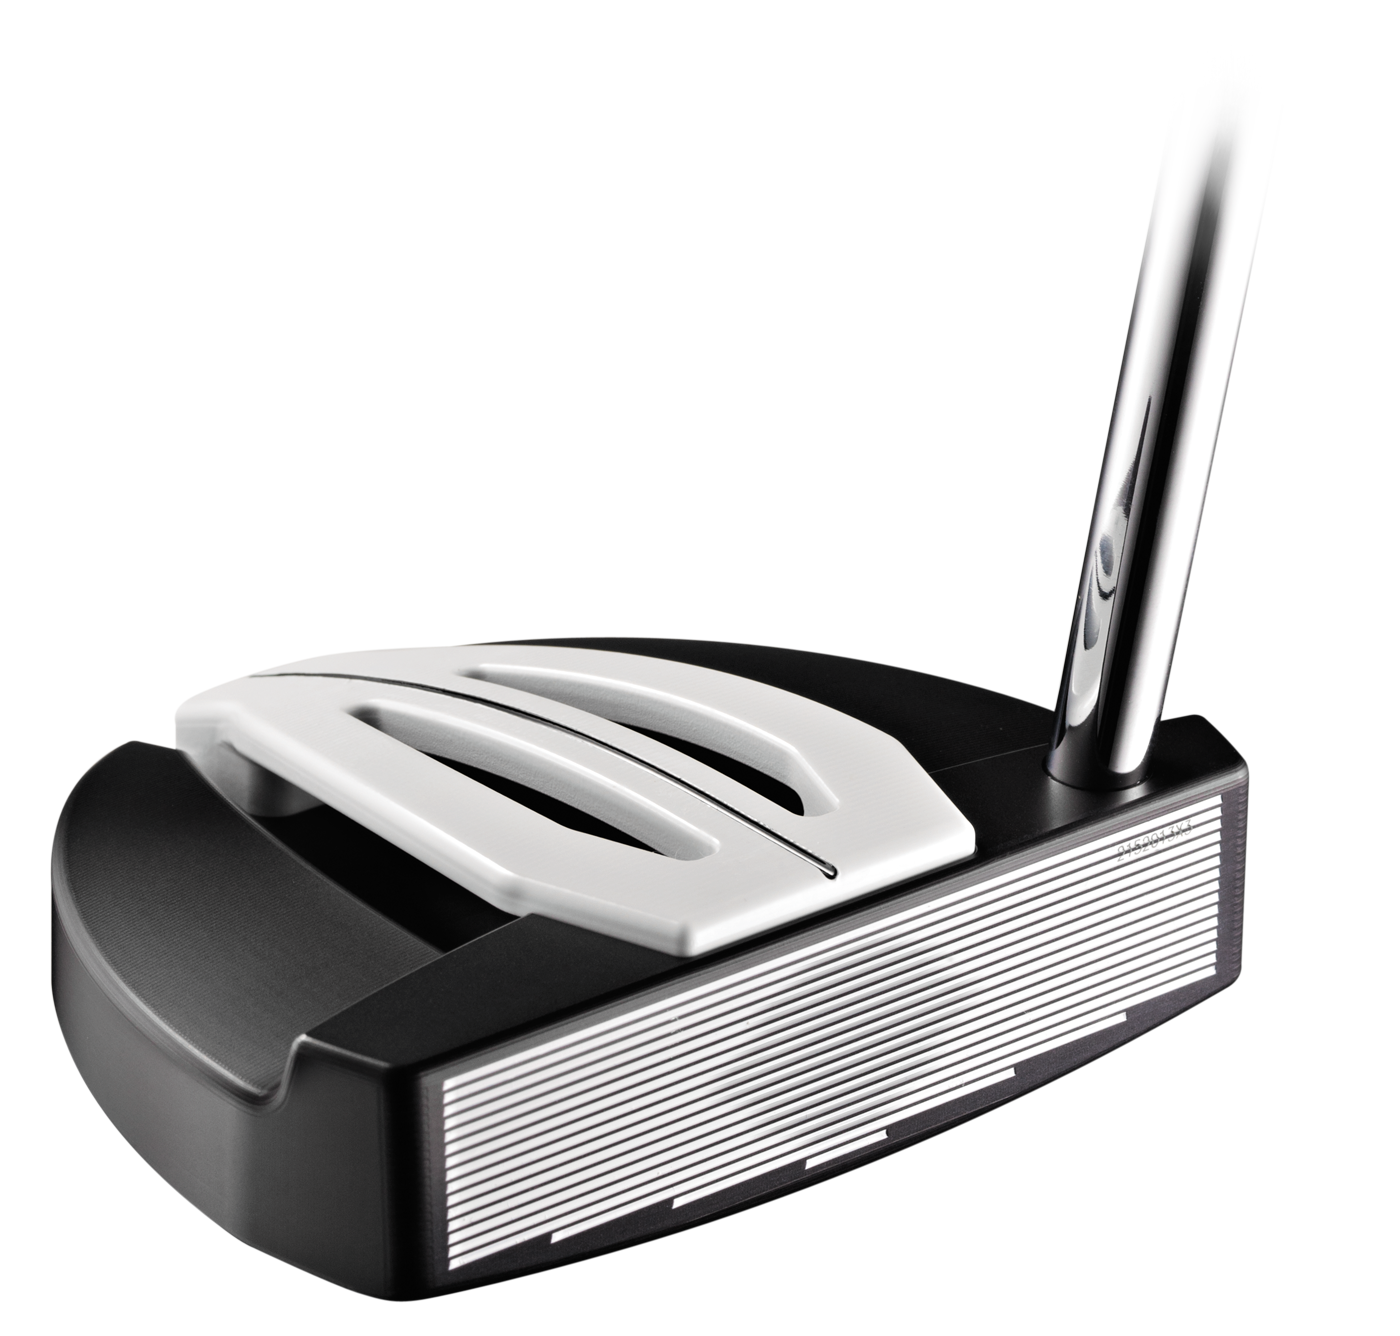 PING unveil Nome TR putter